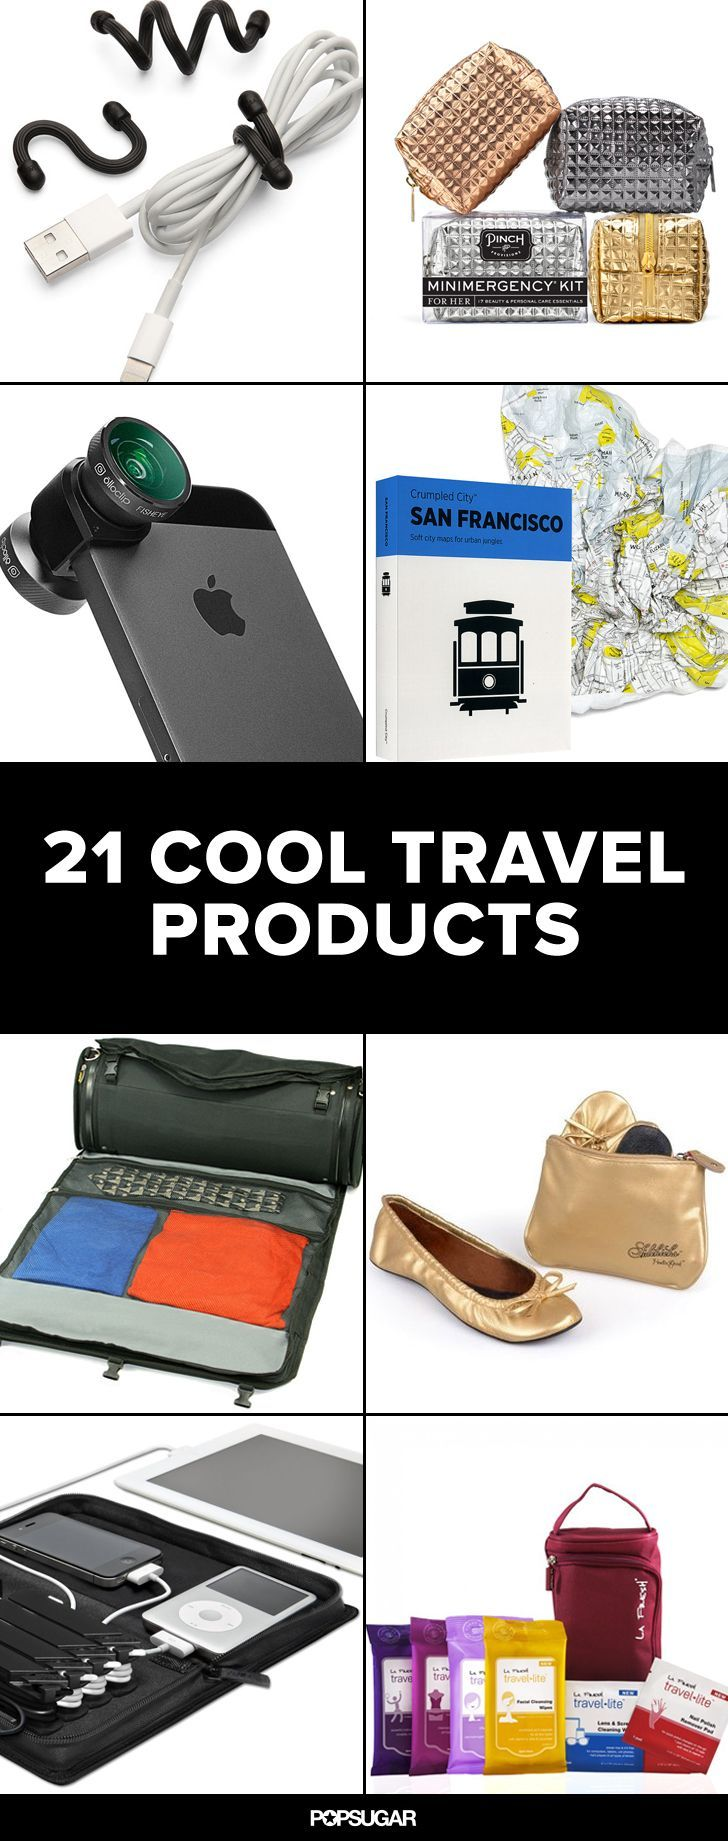 Oh boy- gadgets!  Check these out and then put them to good use on your next adventure! Globe Travel in Bristol, CT is standing by to make your vacation dreams come true!  Reach us at 860-584-0517 or by email at info@globetvl.com!